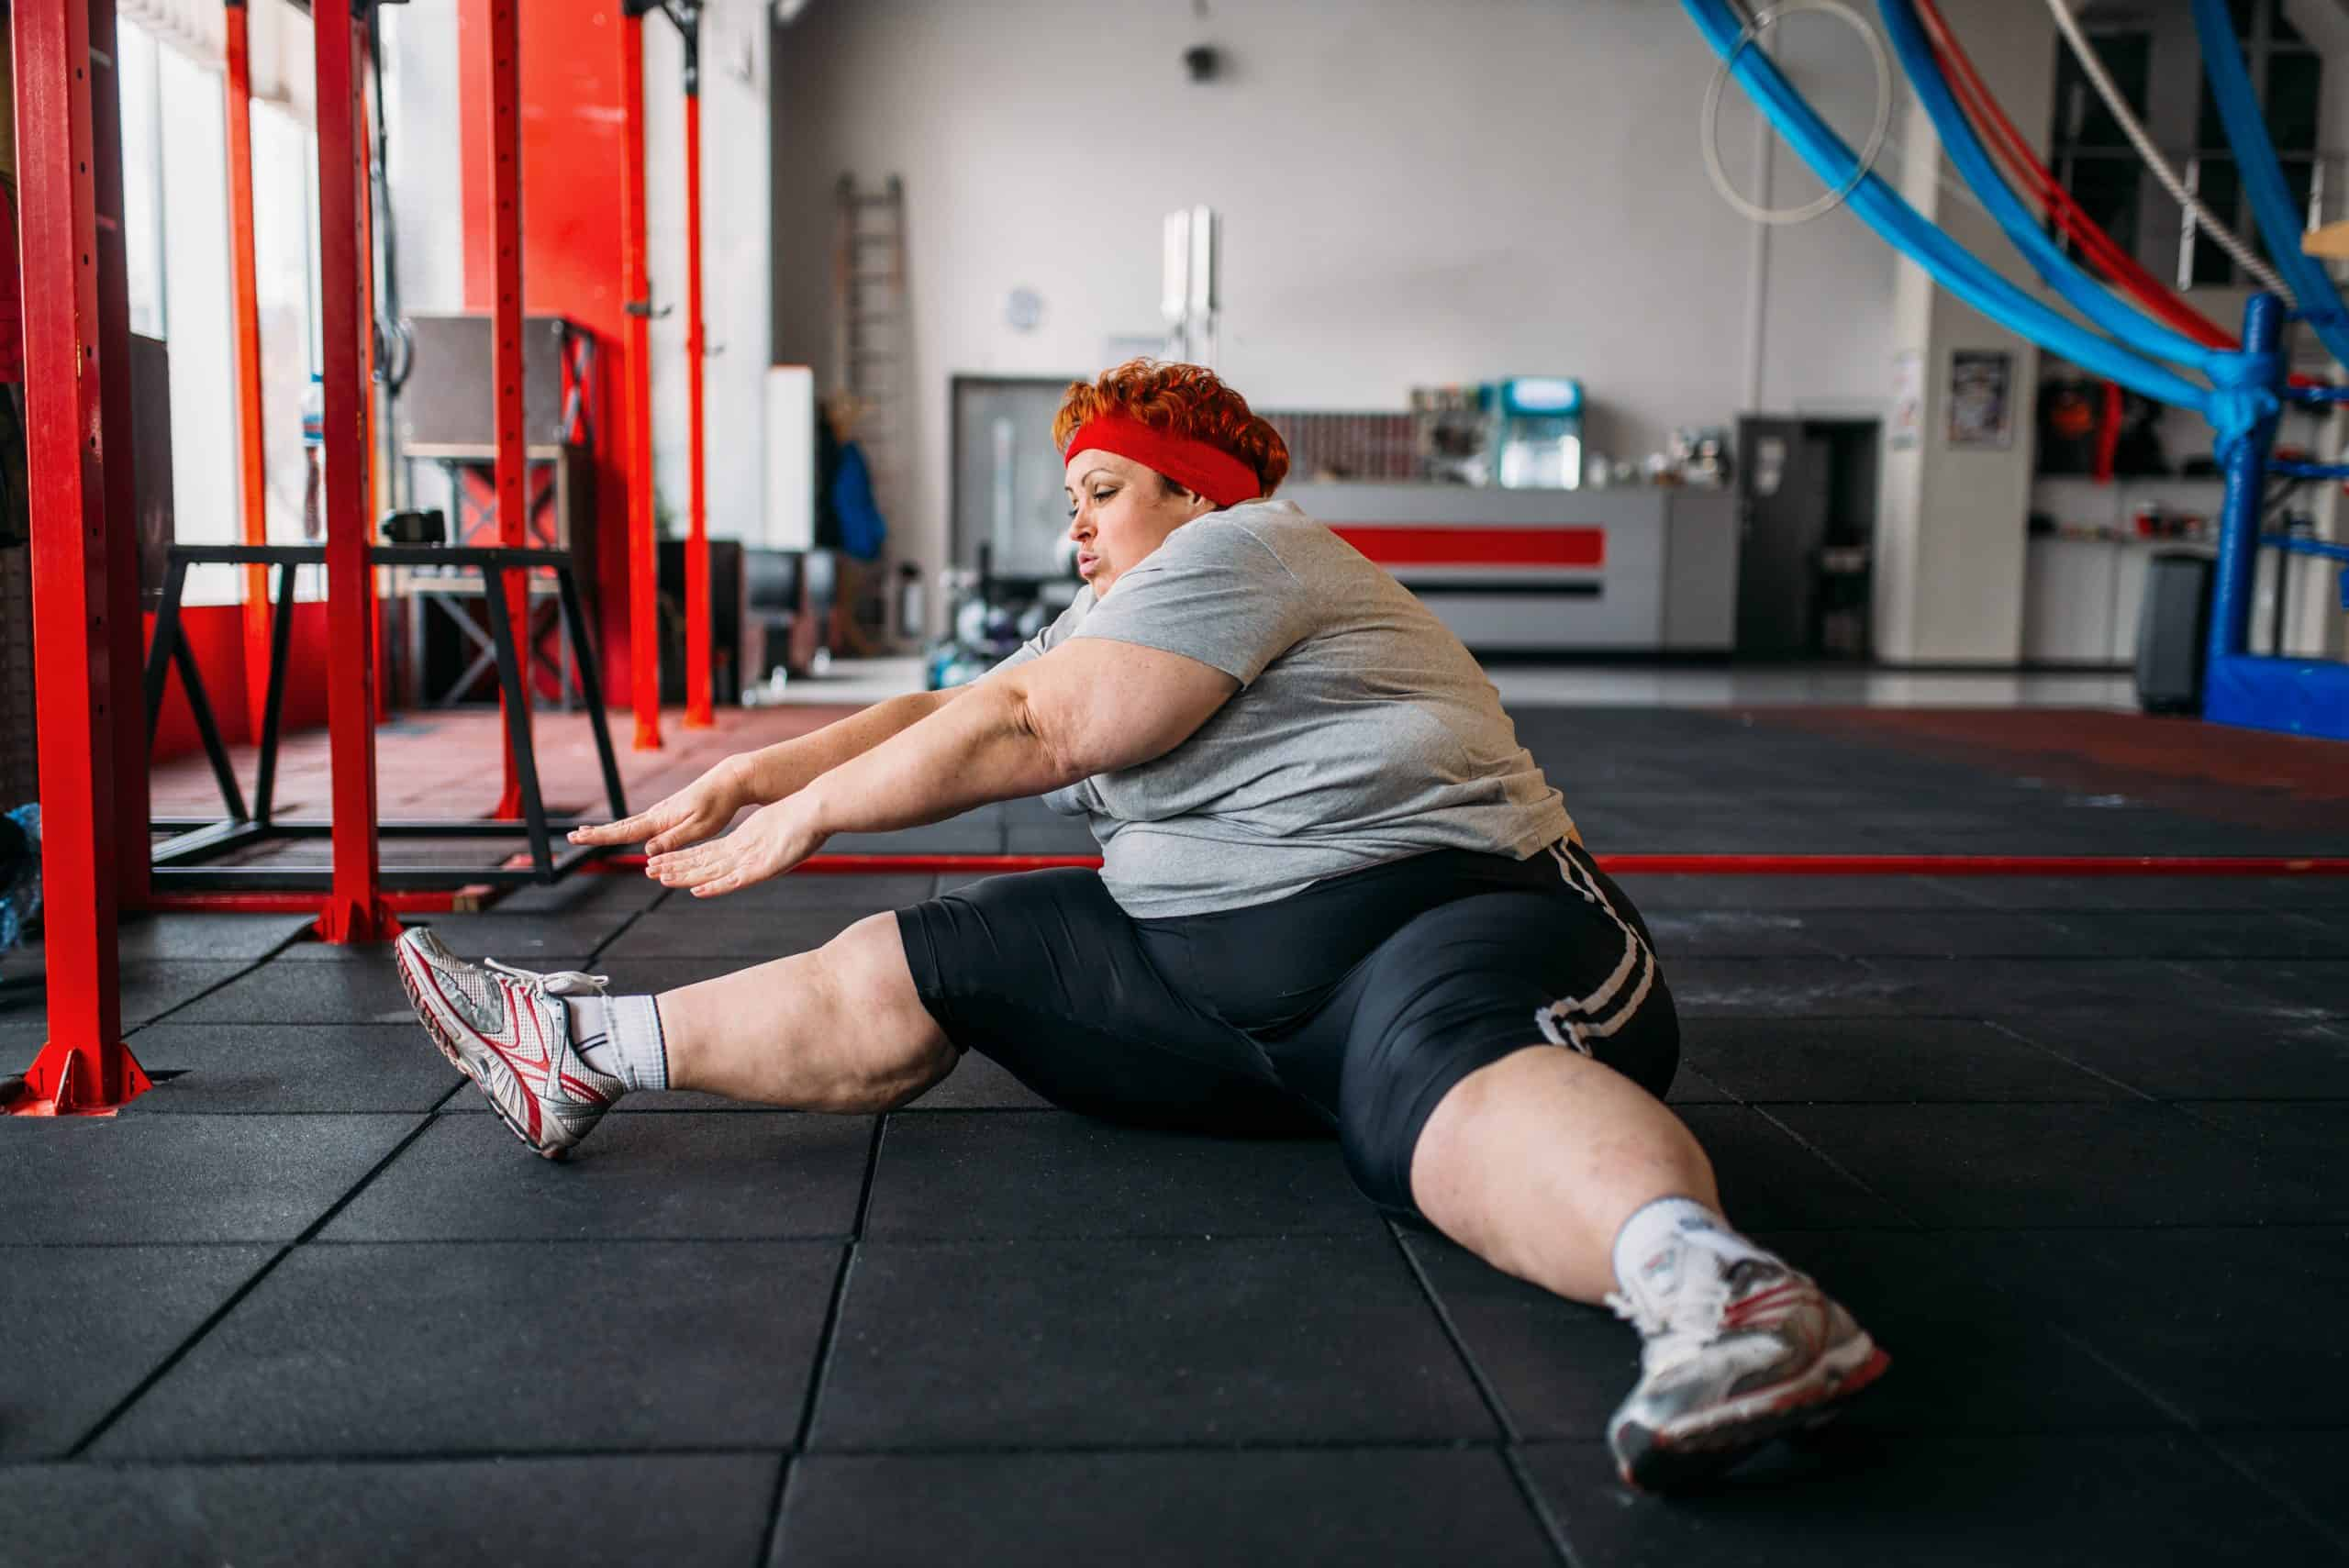 an obese woman works out in the gym